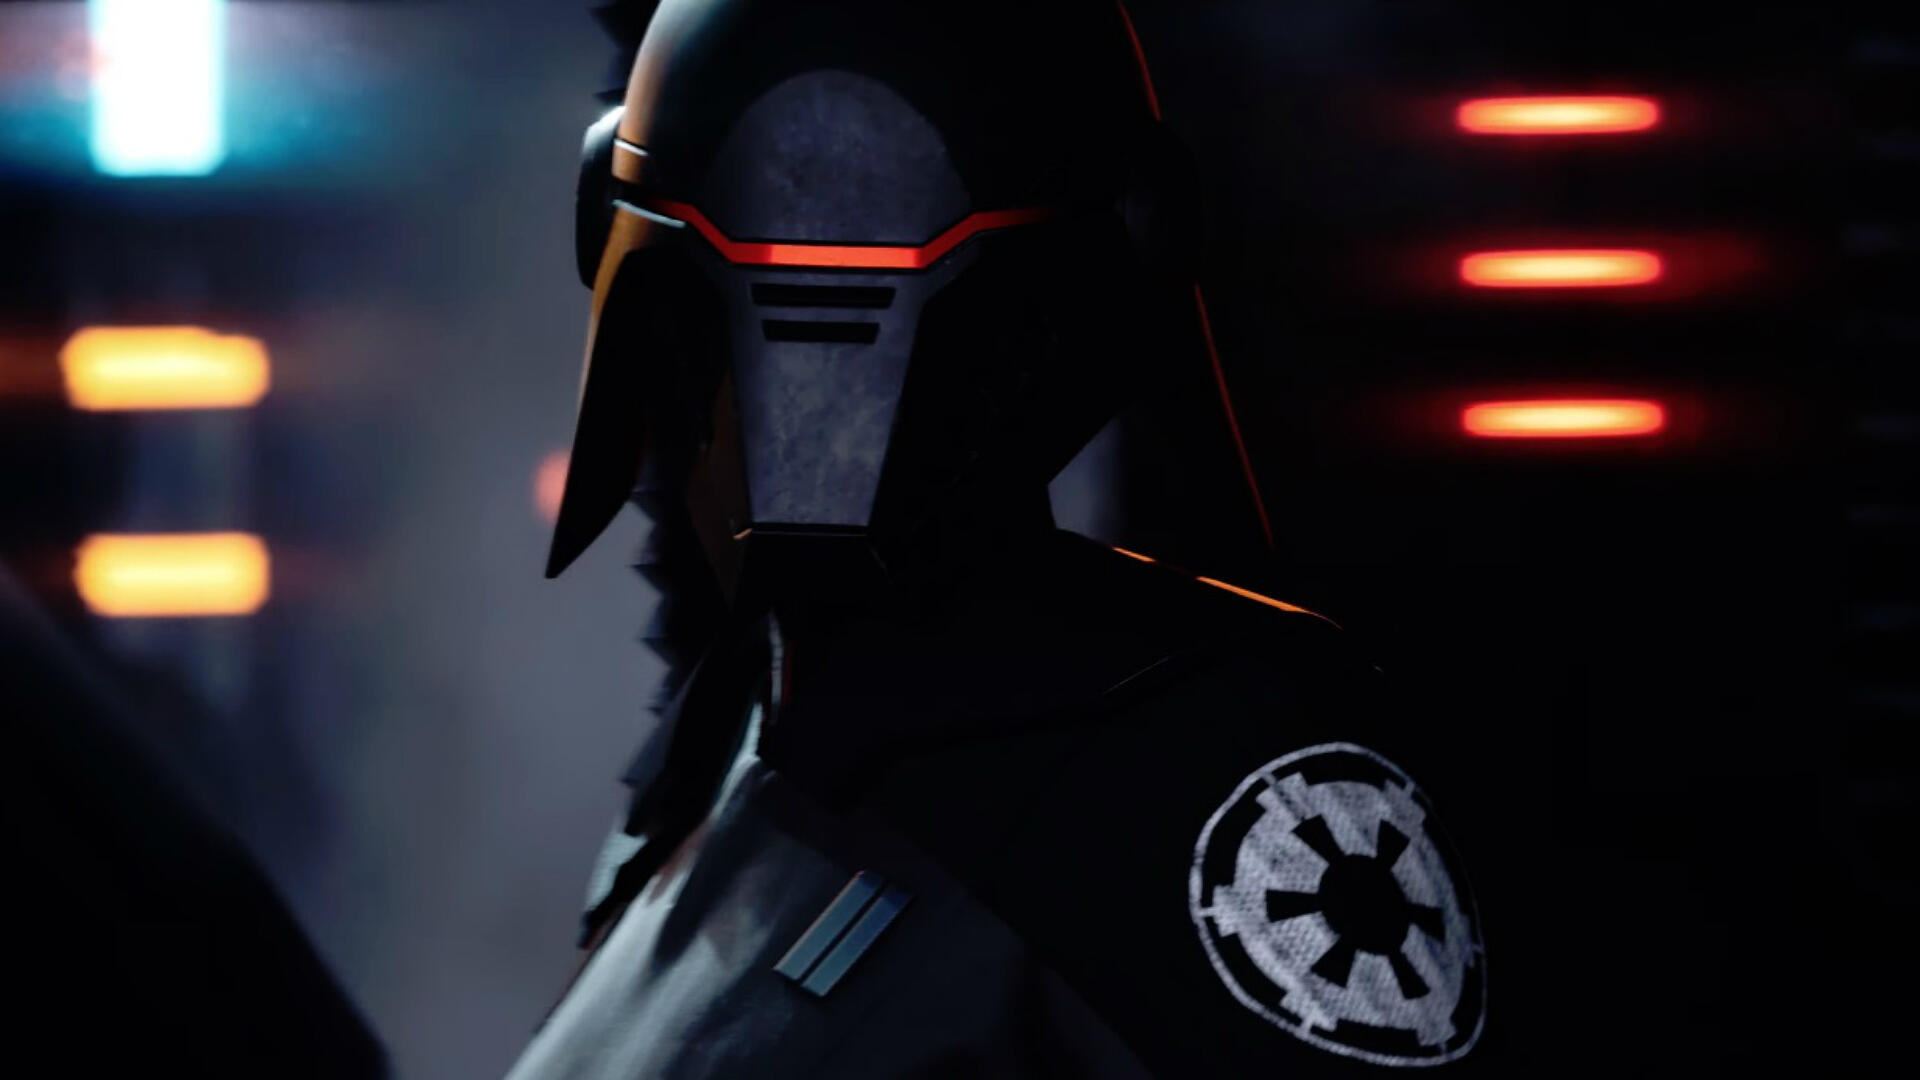 Star Wars Jedi Fallen Order Release Date, E3 2019 Gameplay, Trailer - Everything we Know